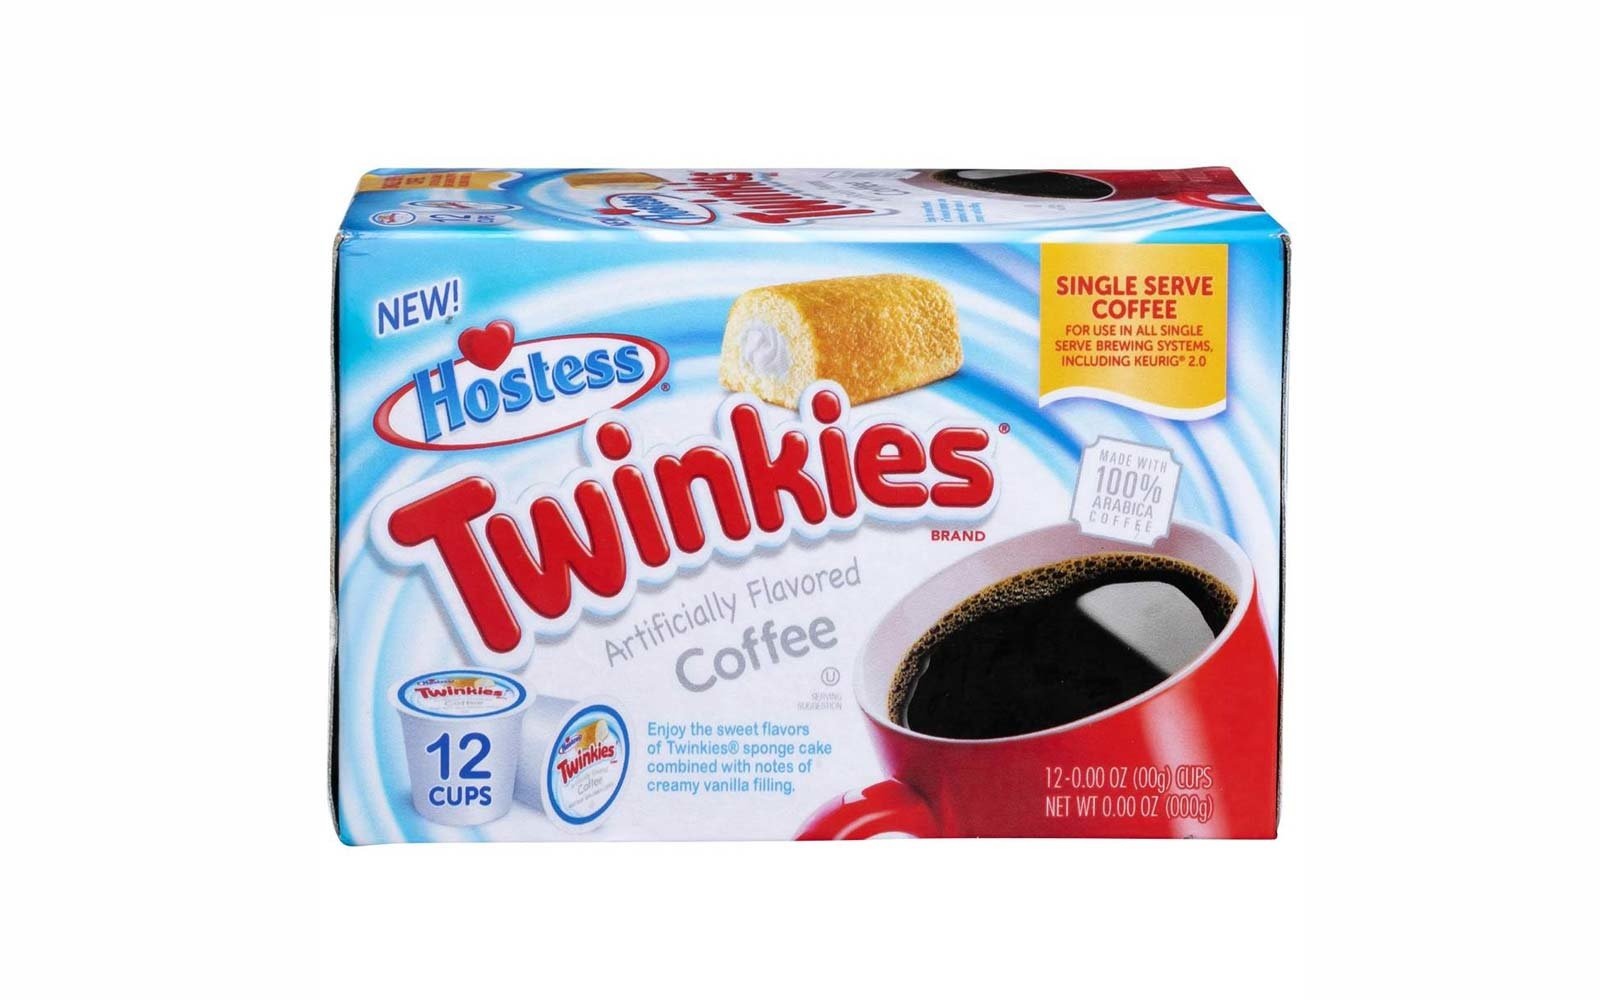 Hostess Just Released Twinkies-flavored Coffee